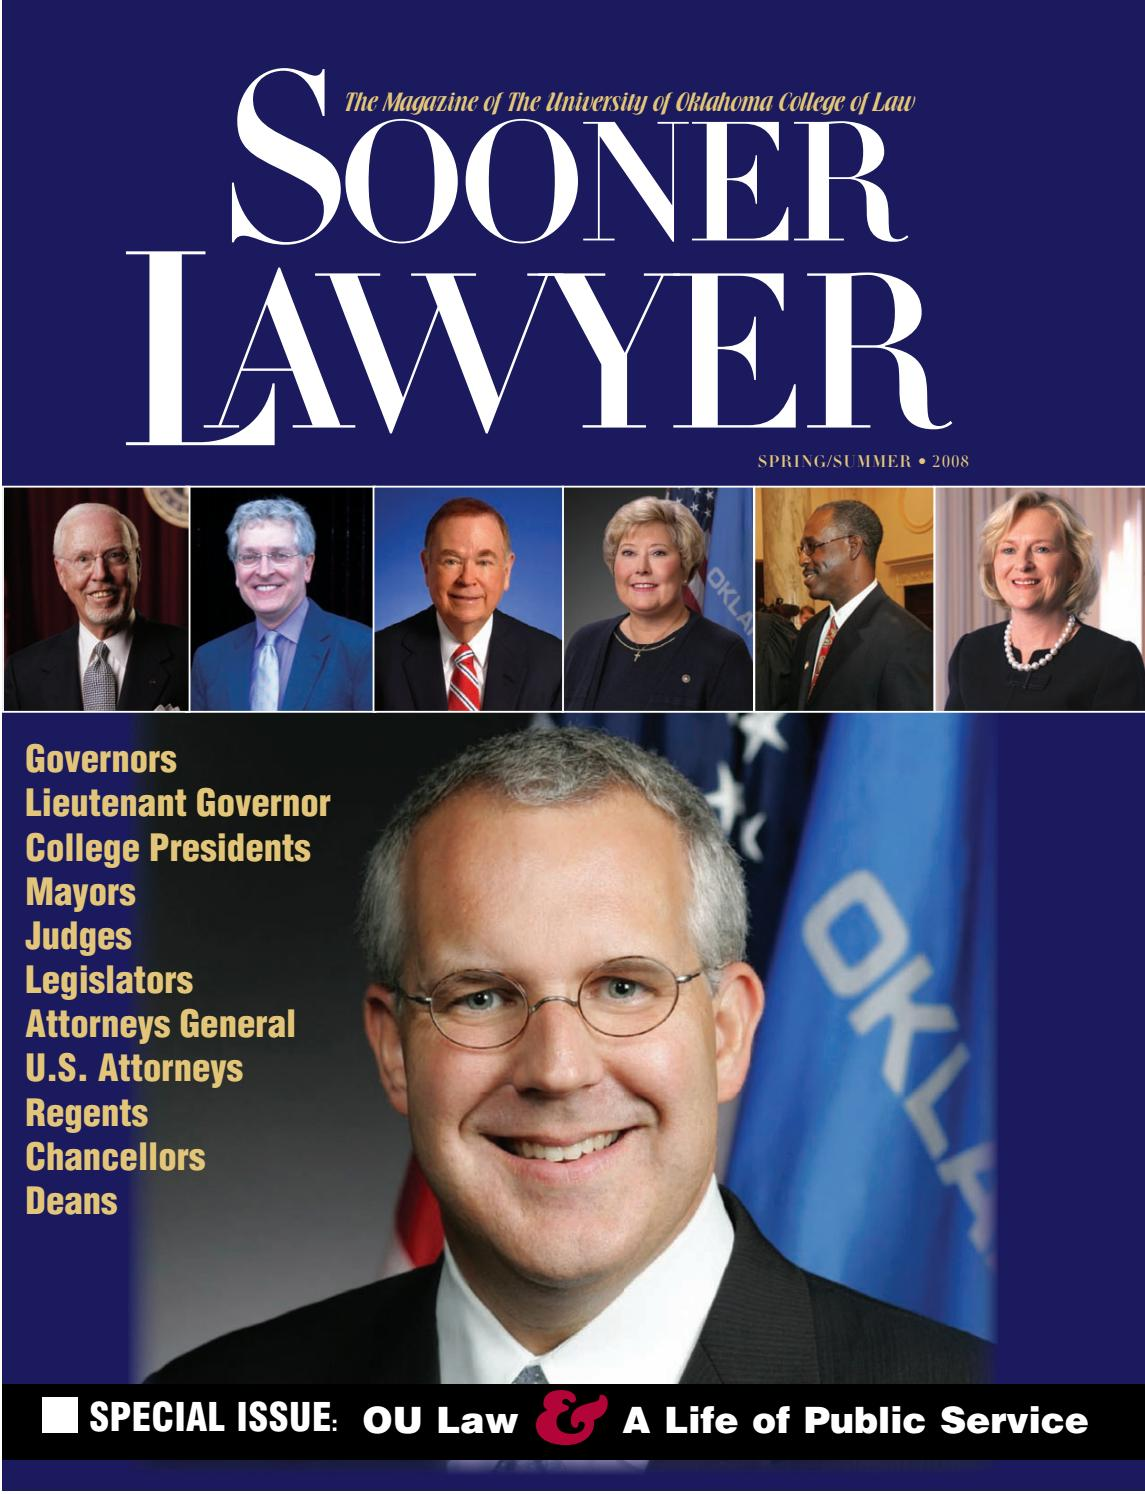 Sooner Lawyer Spring Summer 2008 by University of Oklahoma College